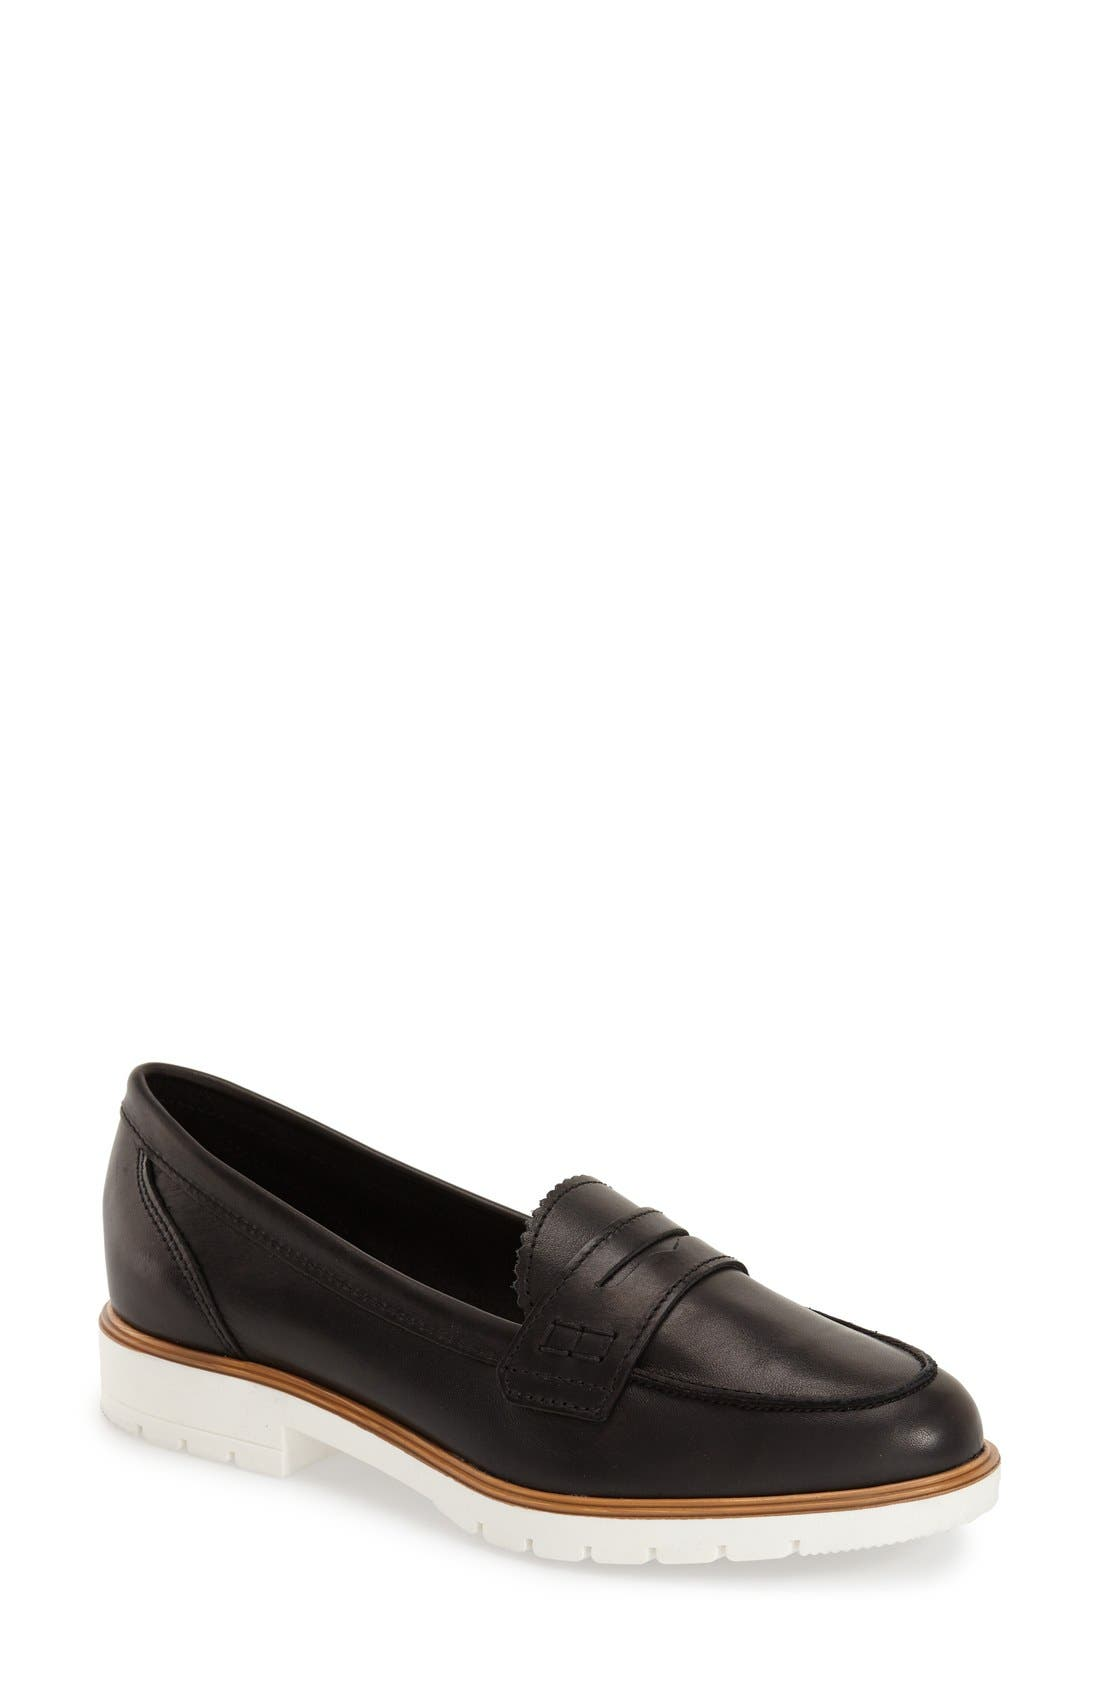 Main Image - Dune London 'Gleat' Loafer (Women)